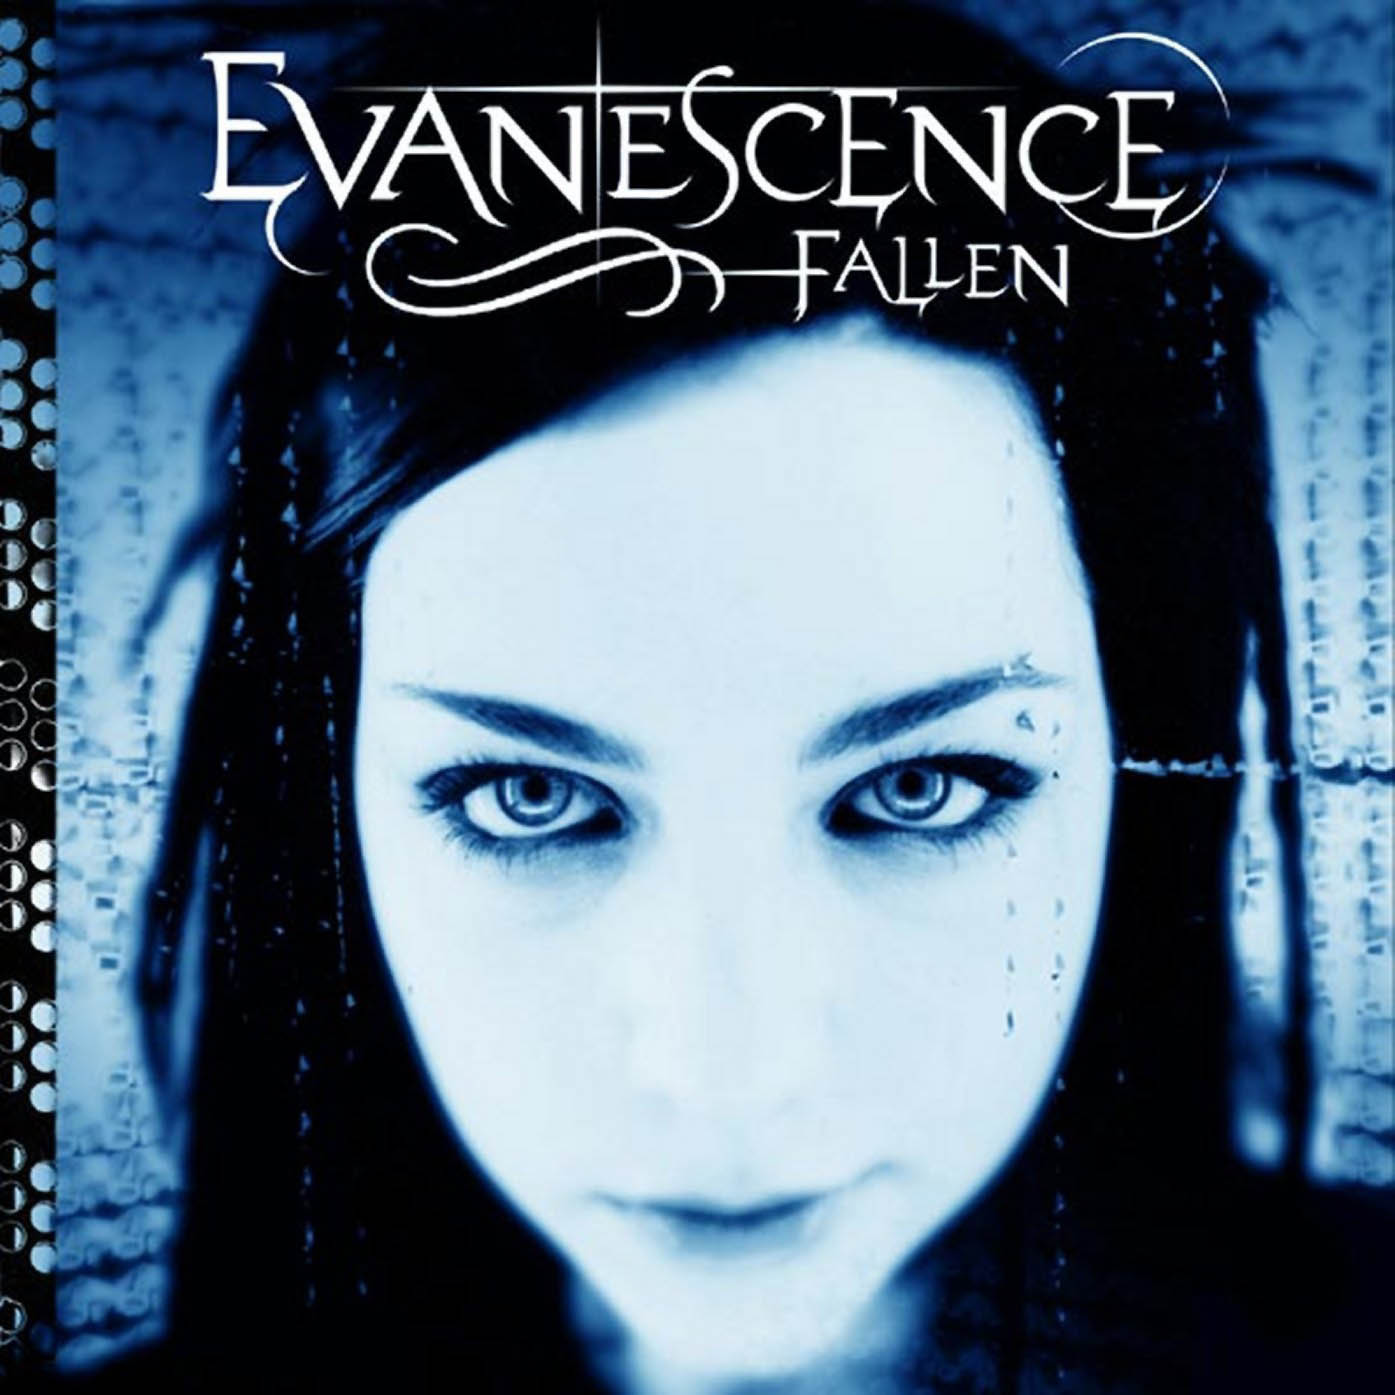 Evanescence - Images Actress